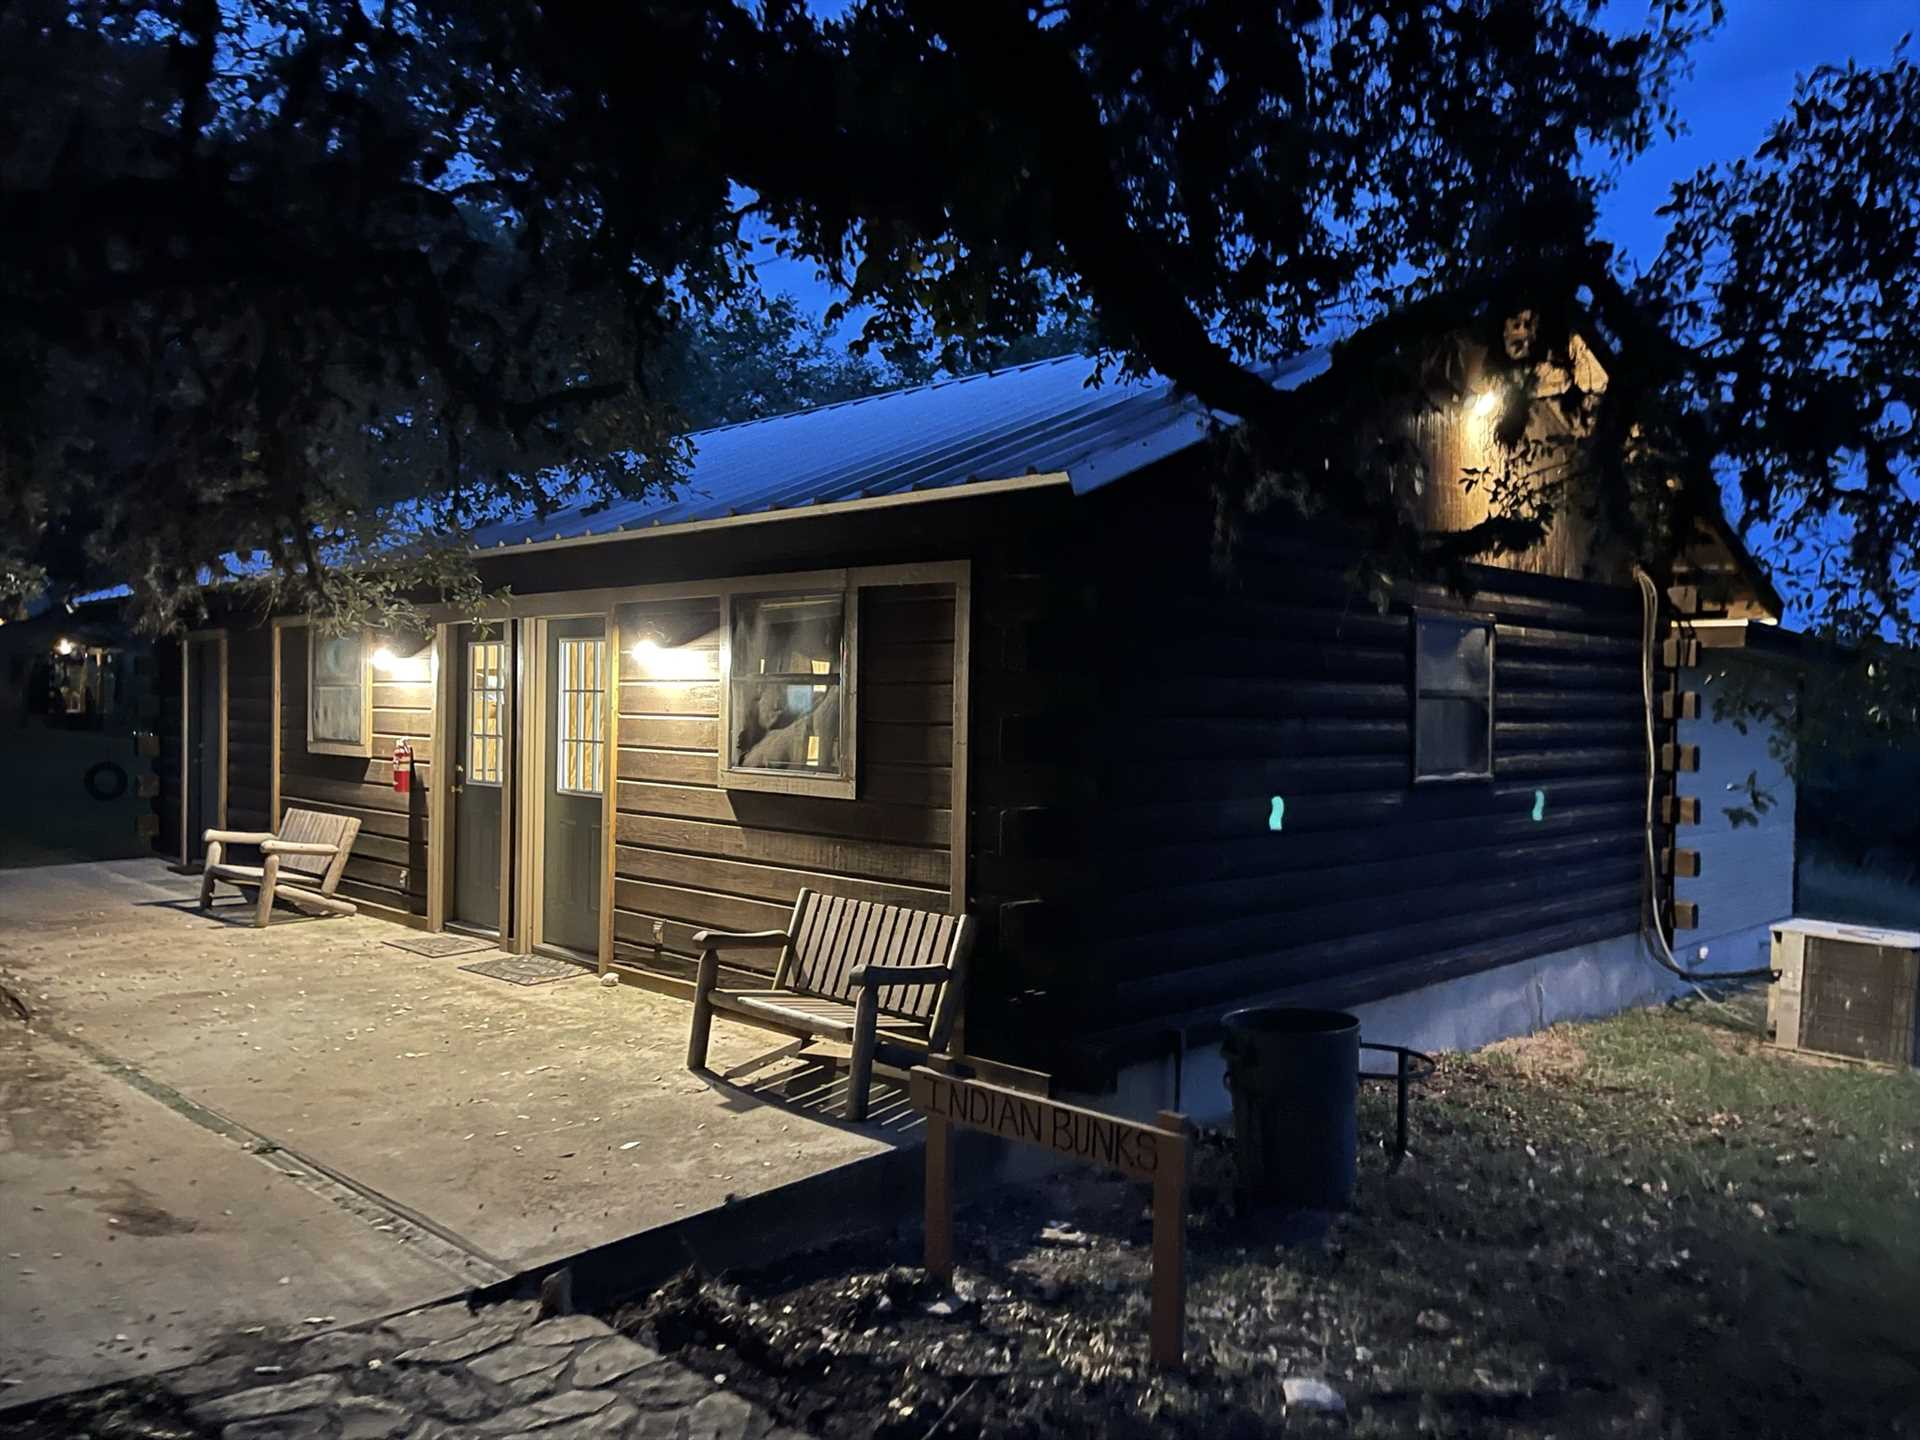 The final two guest cabins at the Retreat are the Cowboy and Indian bunkhouses, which combined sleep up to twenty guests on twin bunks.